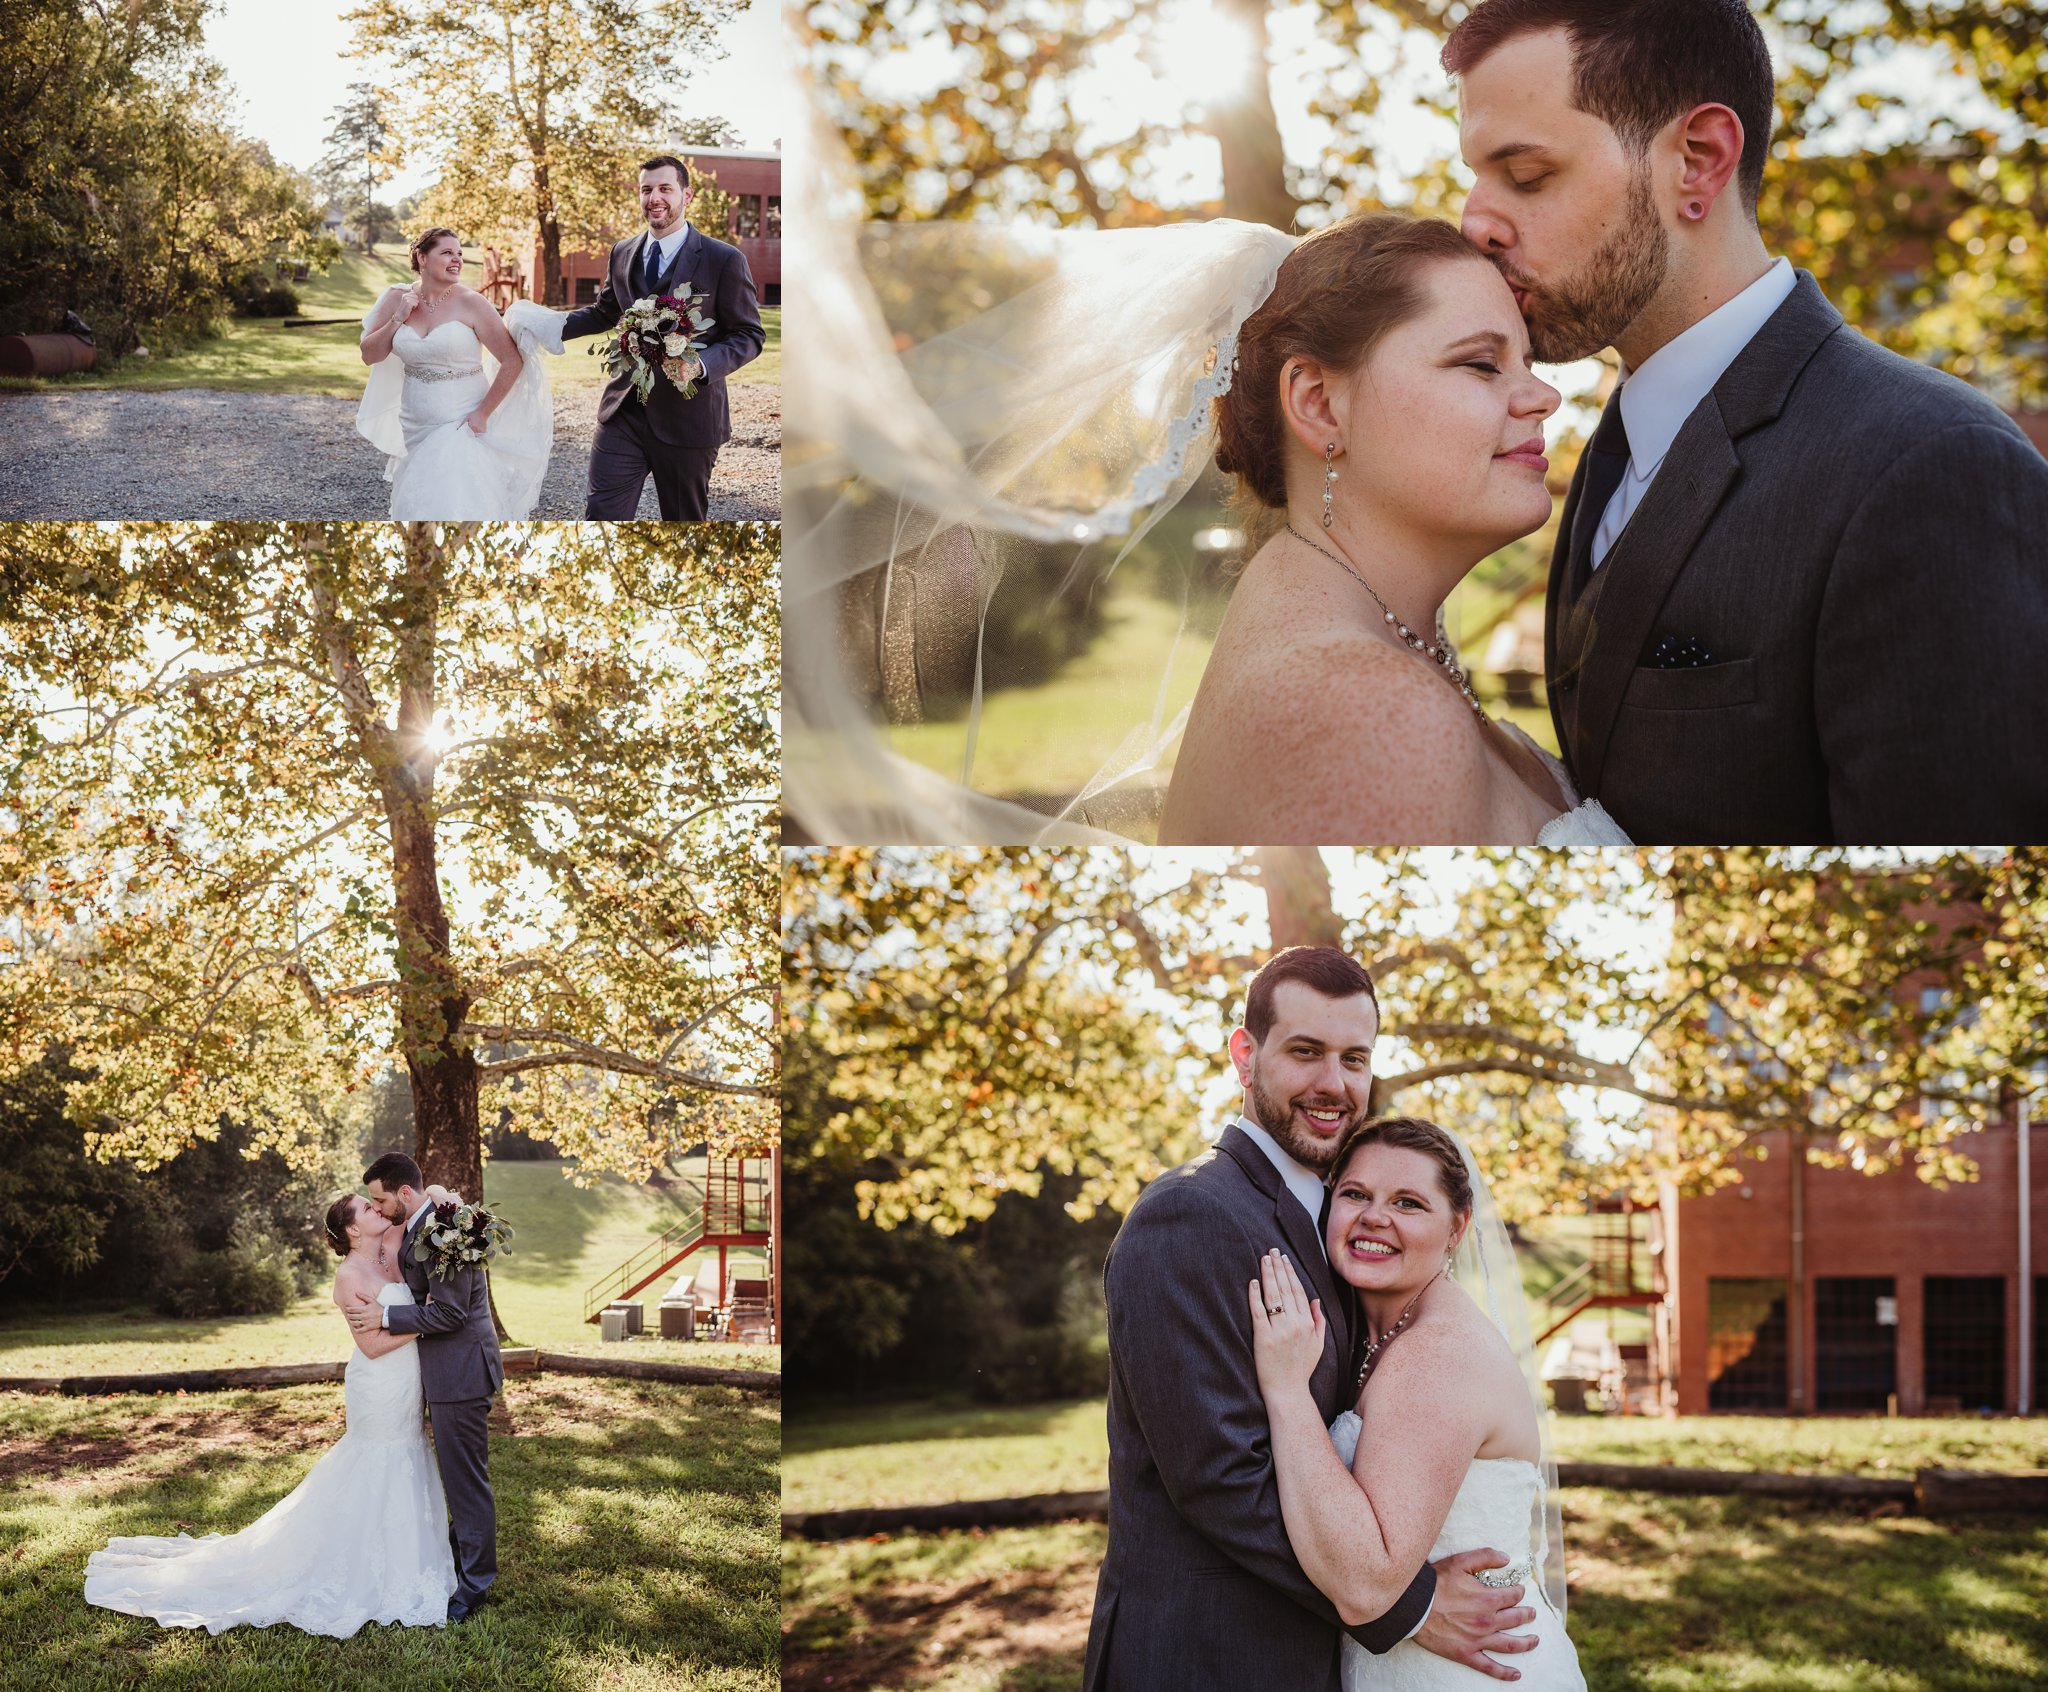 The bride and groom pose for portraits after their wedding ceremony in Raleigh, North Carolina, pictures by Rose Trail Images.